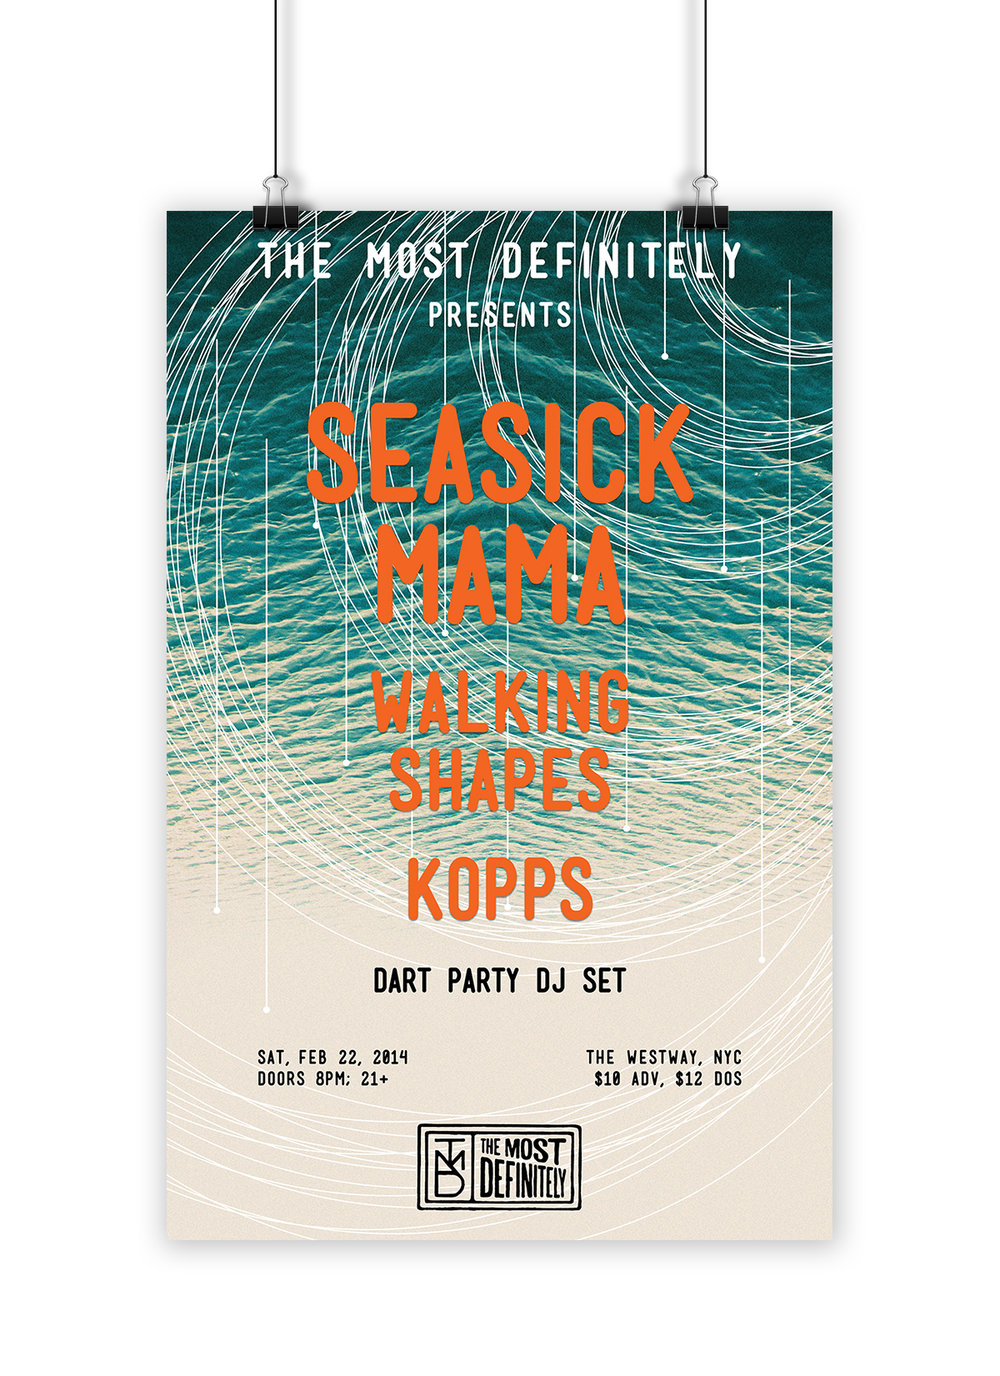 Concert poster print design for a live show featuring Seasick Mama, Walking Shapes, Kopps, and Dart Party, for music blog The Most Definitely.